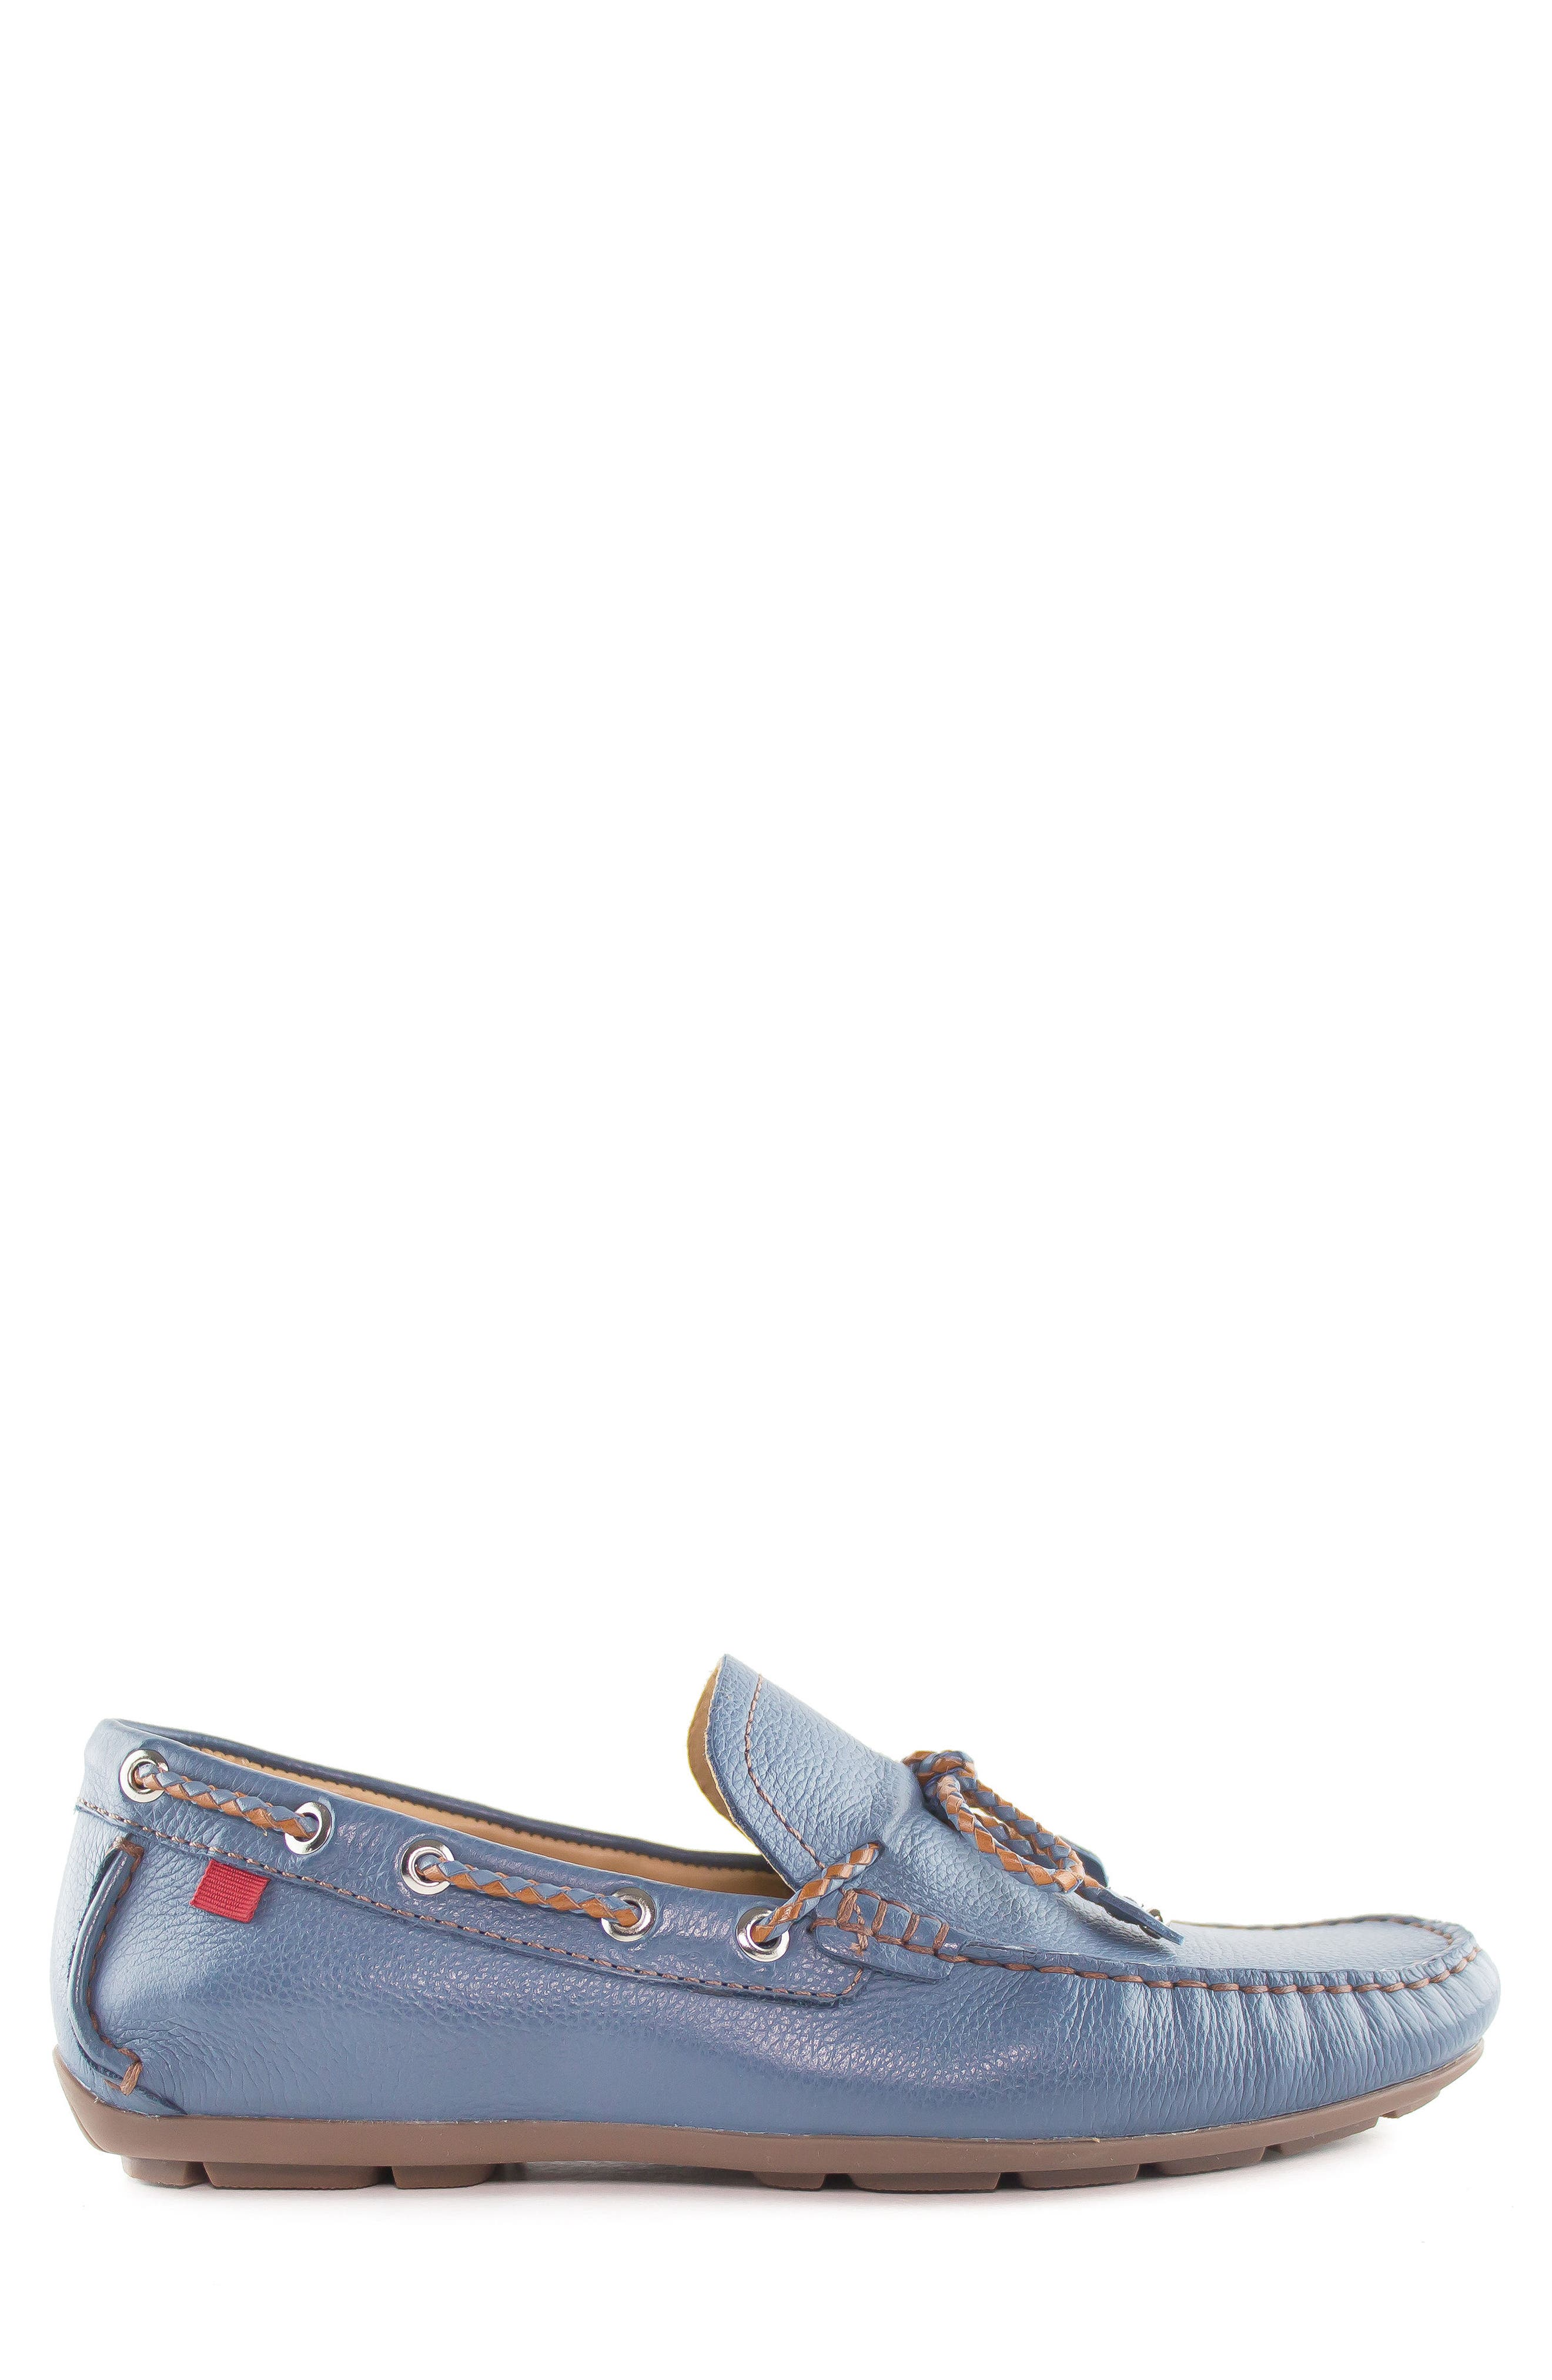 Alternate Image 3  - Marc Joseph New York 'Cypress' Moccasin (Men)